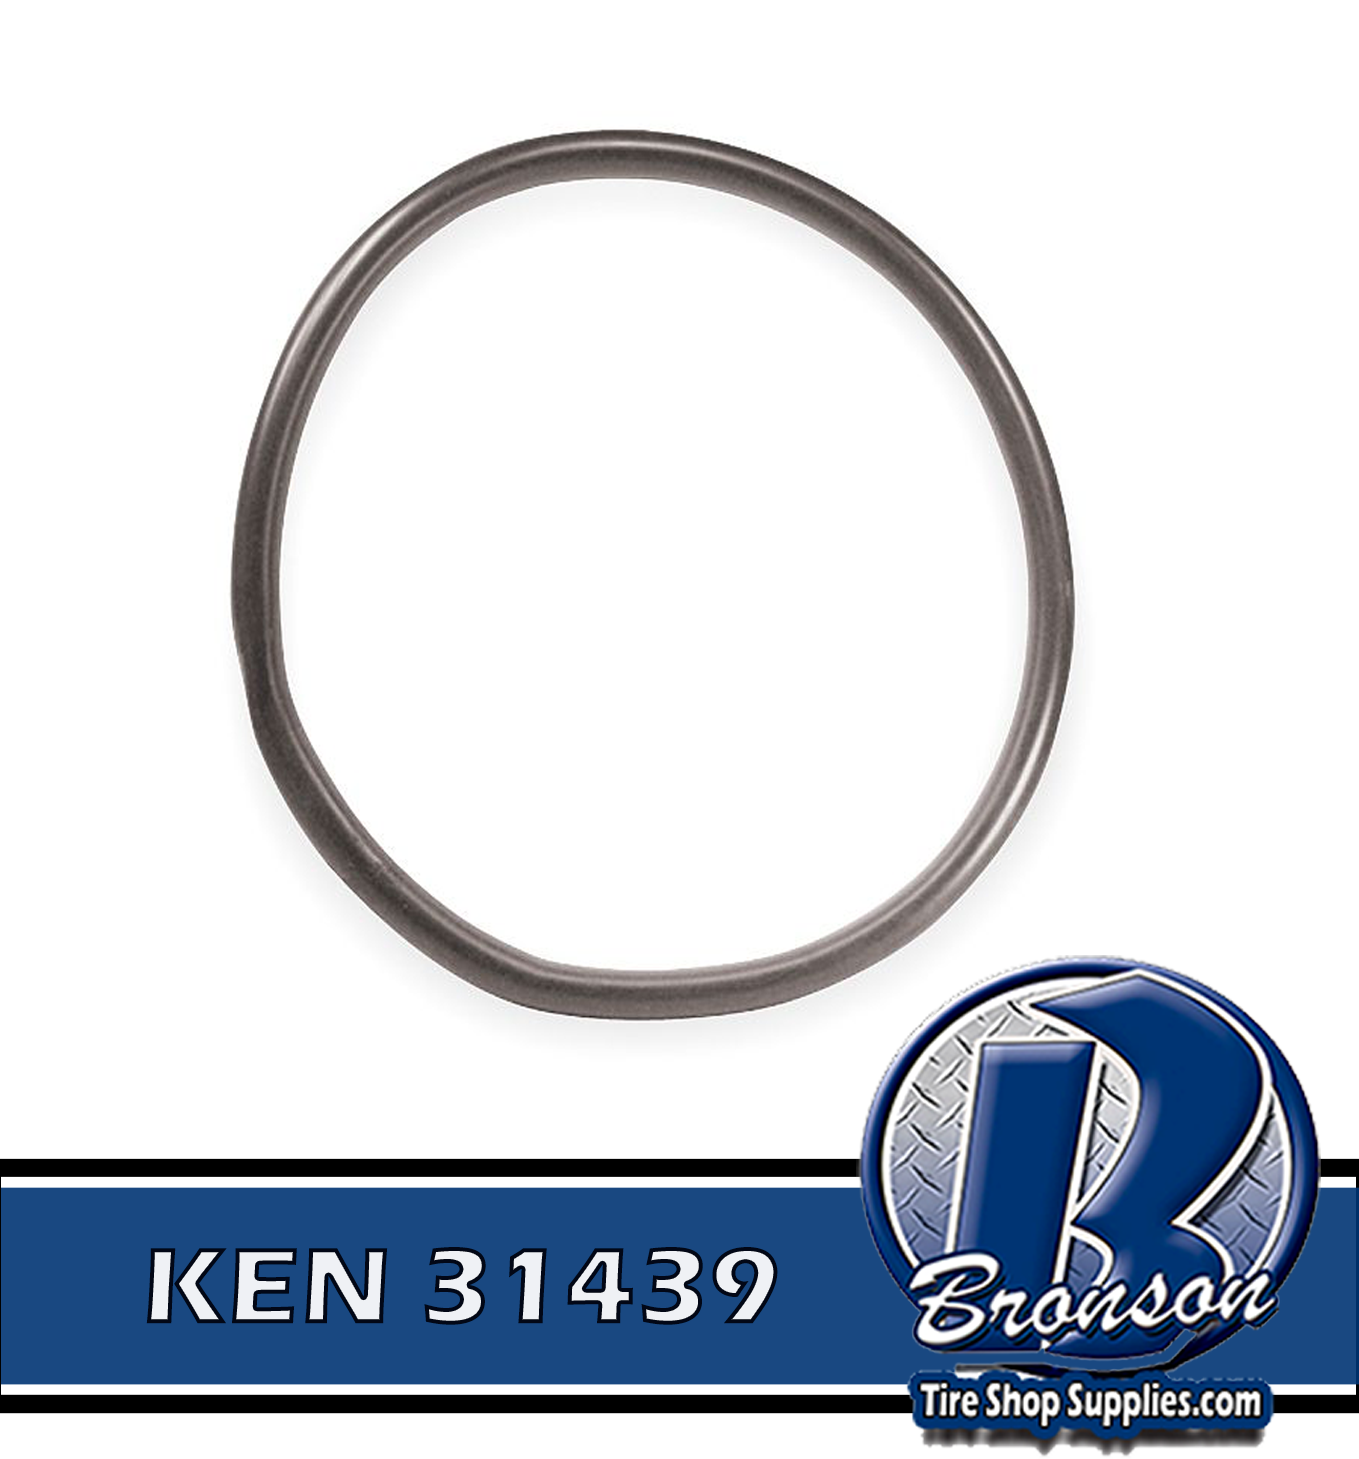 KEN 31439 22.5 INFLATION RING Tire Bead Seater